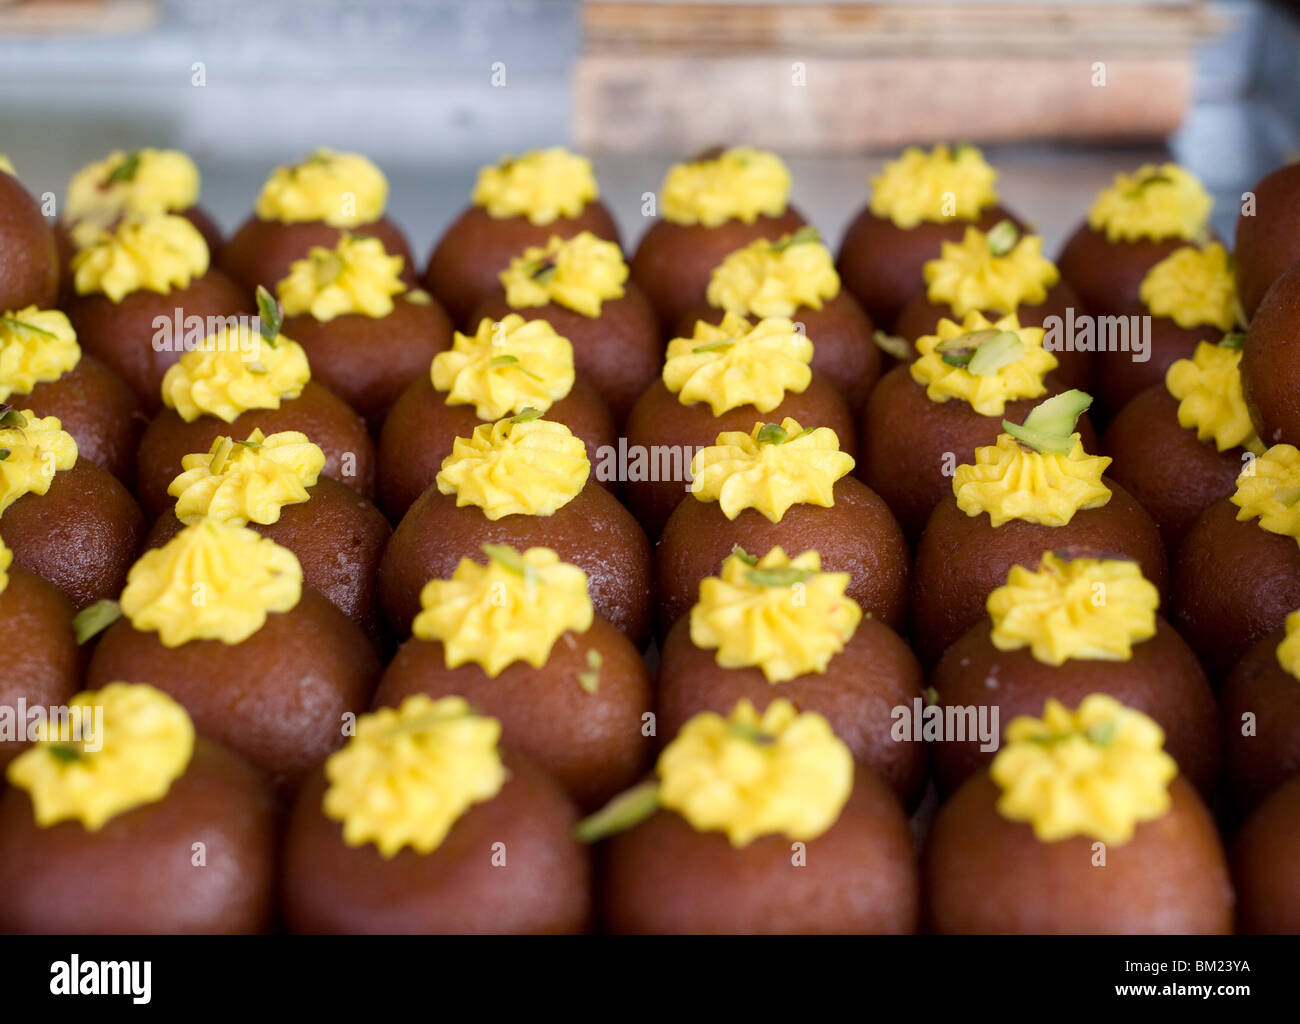 Diwali sweets for sale in Jaipur shop, Rajasthan, India, Asia - Stock Image